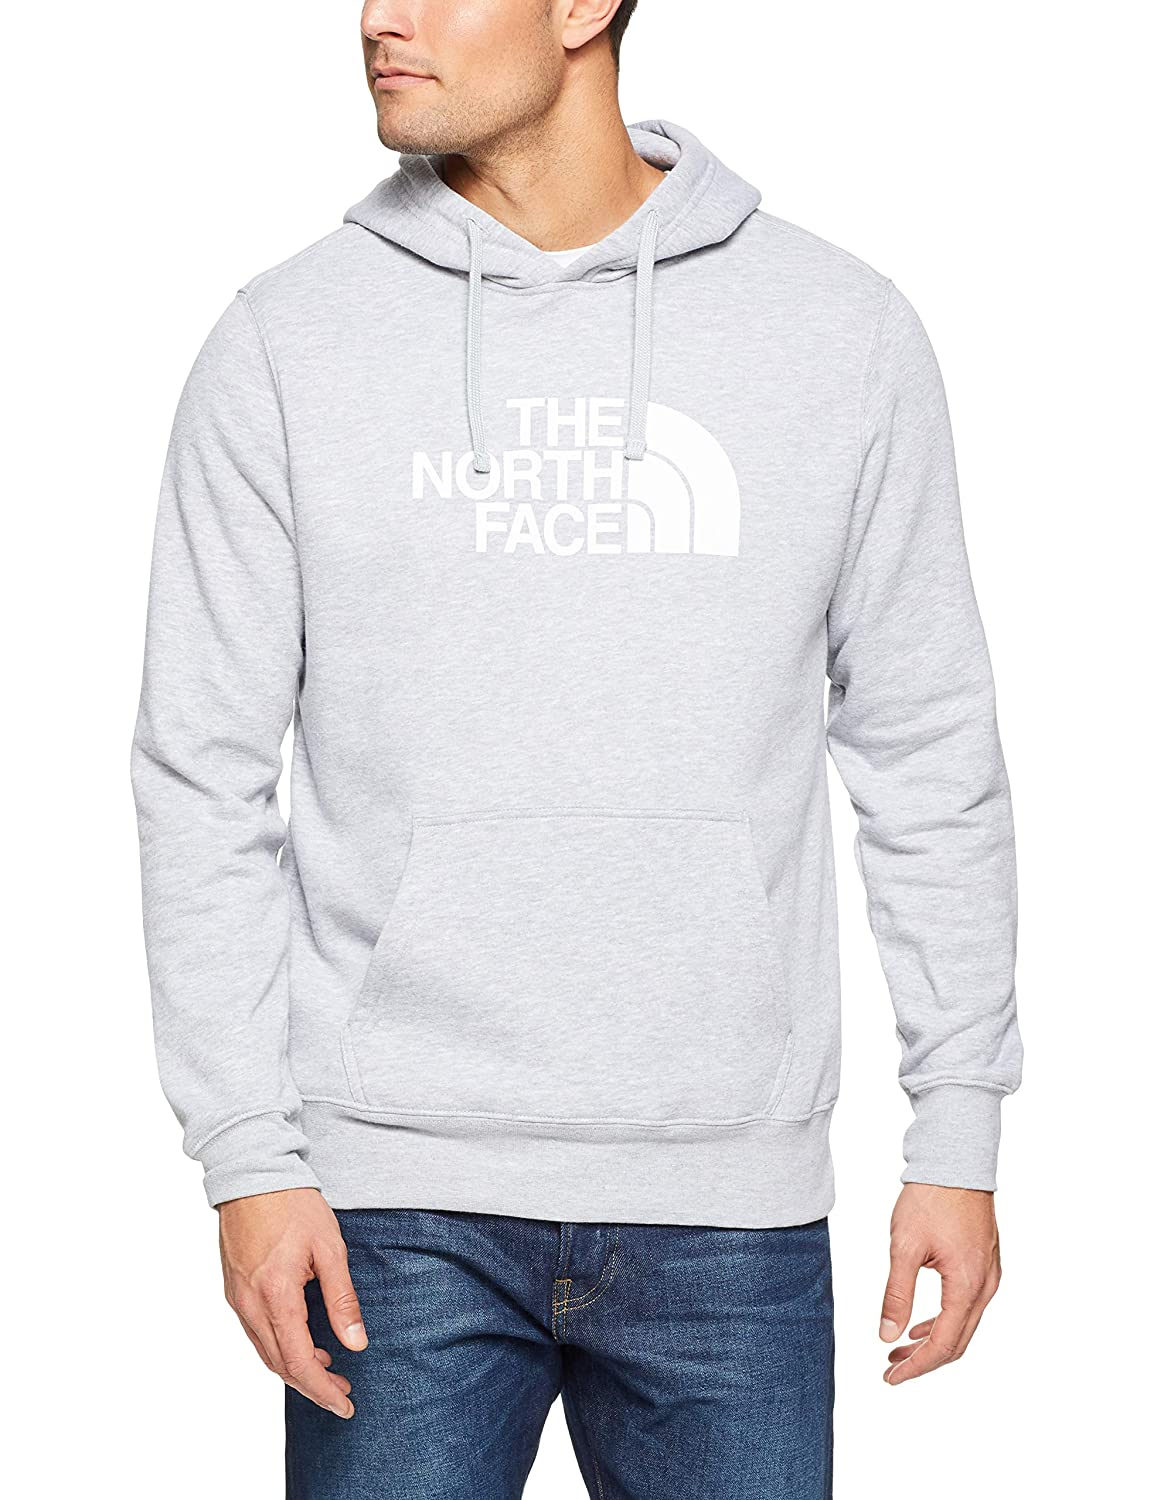 The North Face Men's Half Dome Pullover Hoodie TNF Light Grey Heather & TNF White M